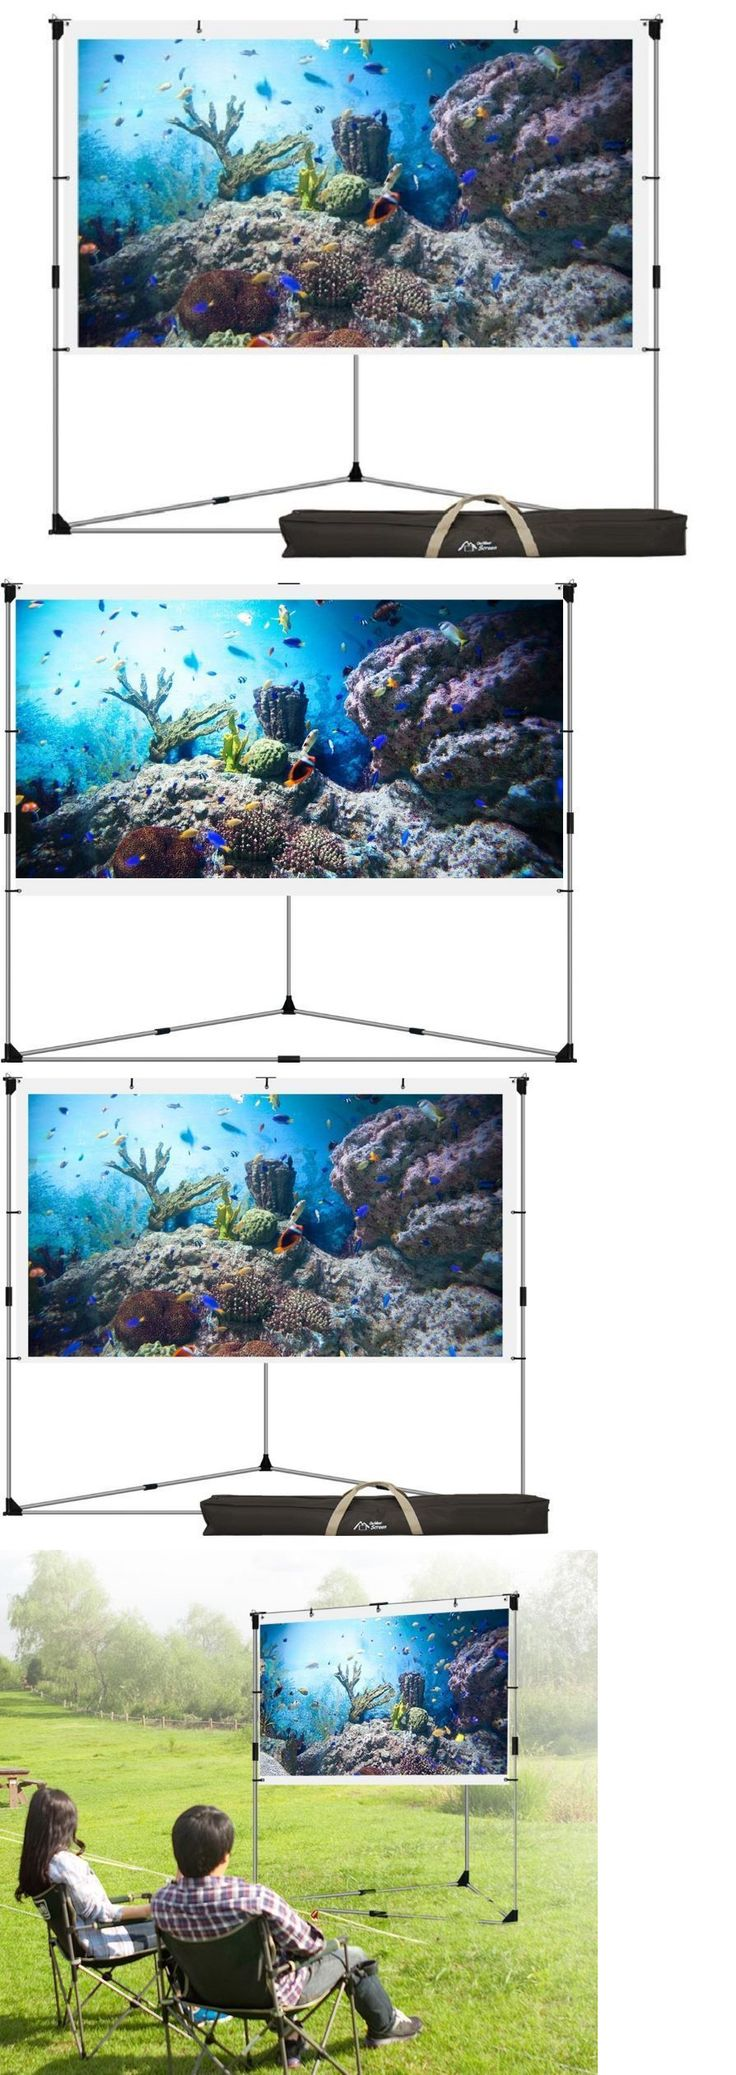 Projection Screens and Material: Video Projector Screen Outdoor Movie Portable Mobile Large Home Backyard Patio BUY IT NOW ONLY: $136.95